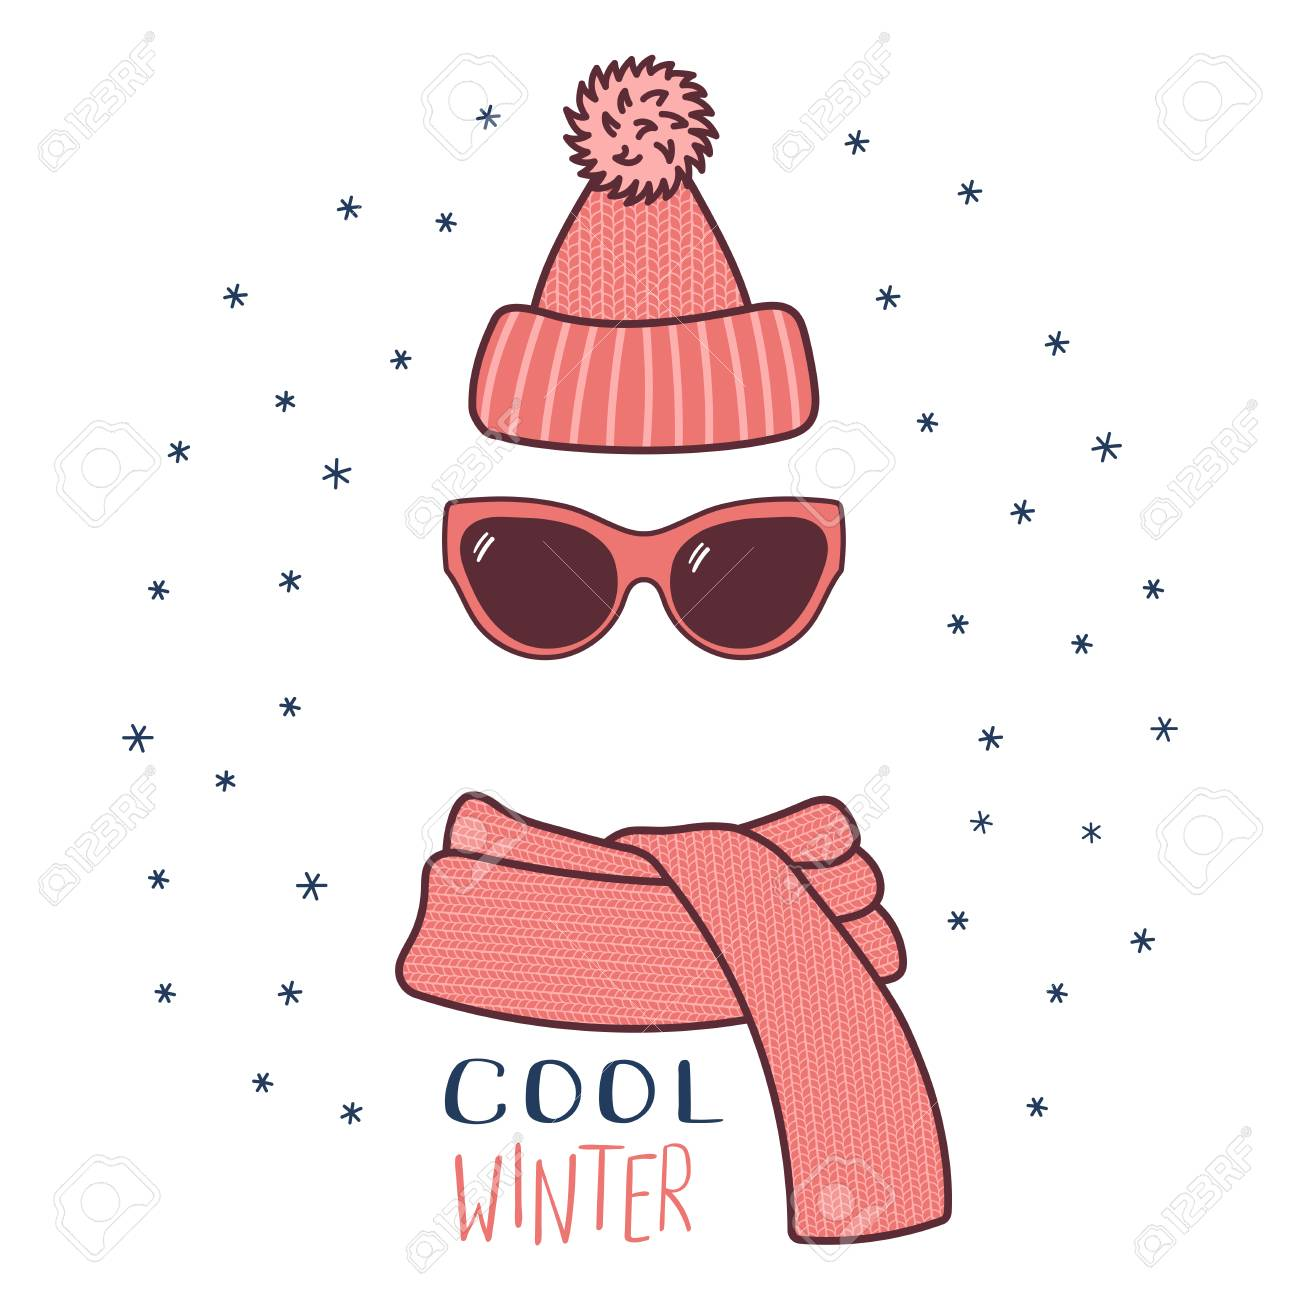 Hand Drawn Vector Illustration Of A Warm Funny Knitted Hat Sunglasses Royalty Free Cliparts Vectors And Stock Illustration Image 89334255